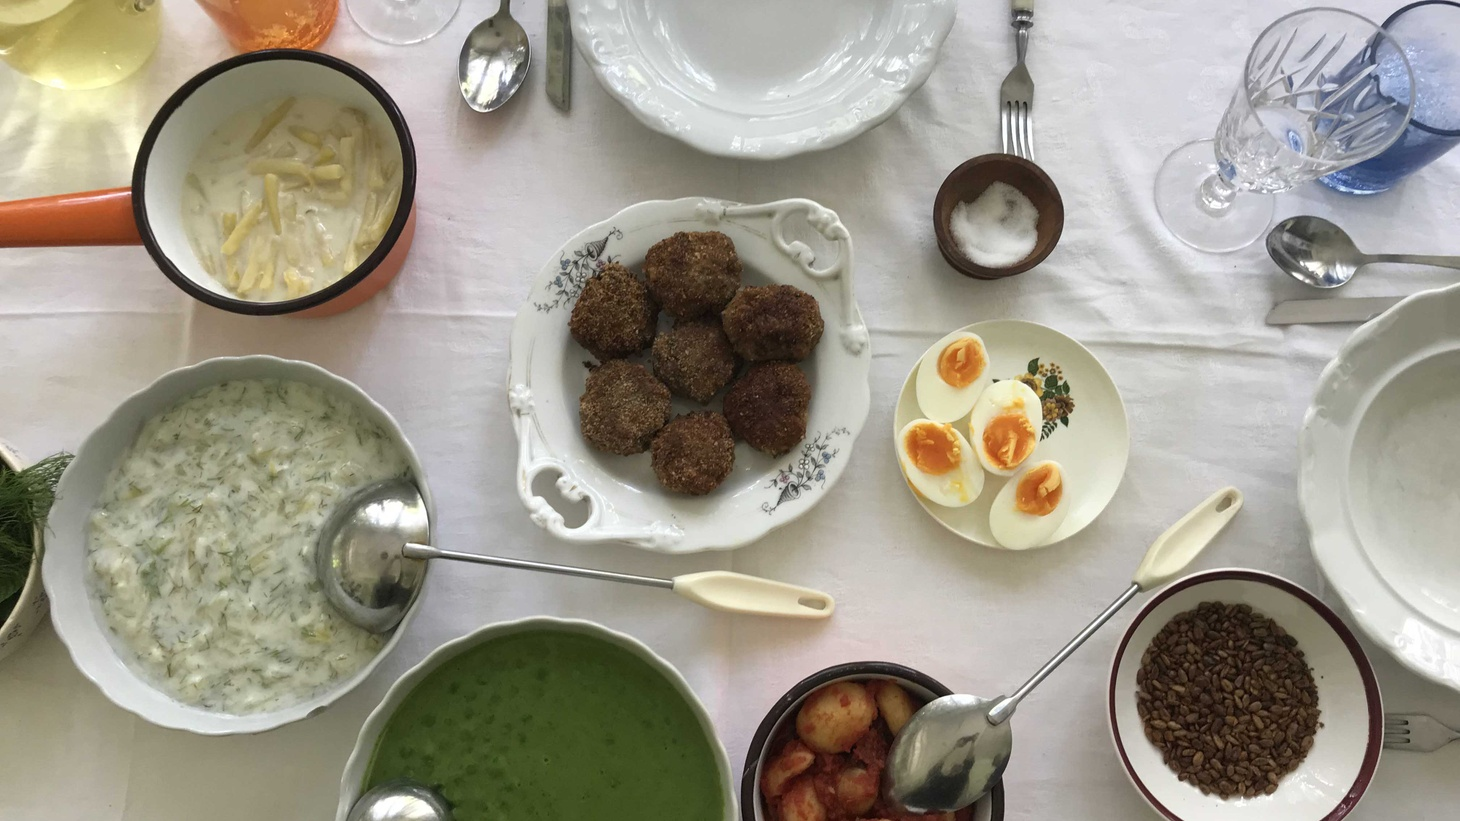 A Hungarian summer spread of zucchini, wax bean, and pea fözeléks, potatoes with tomato and tarragon, pork meatballs, and elderflower spritzer